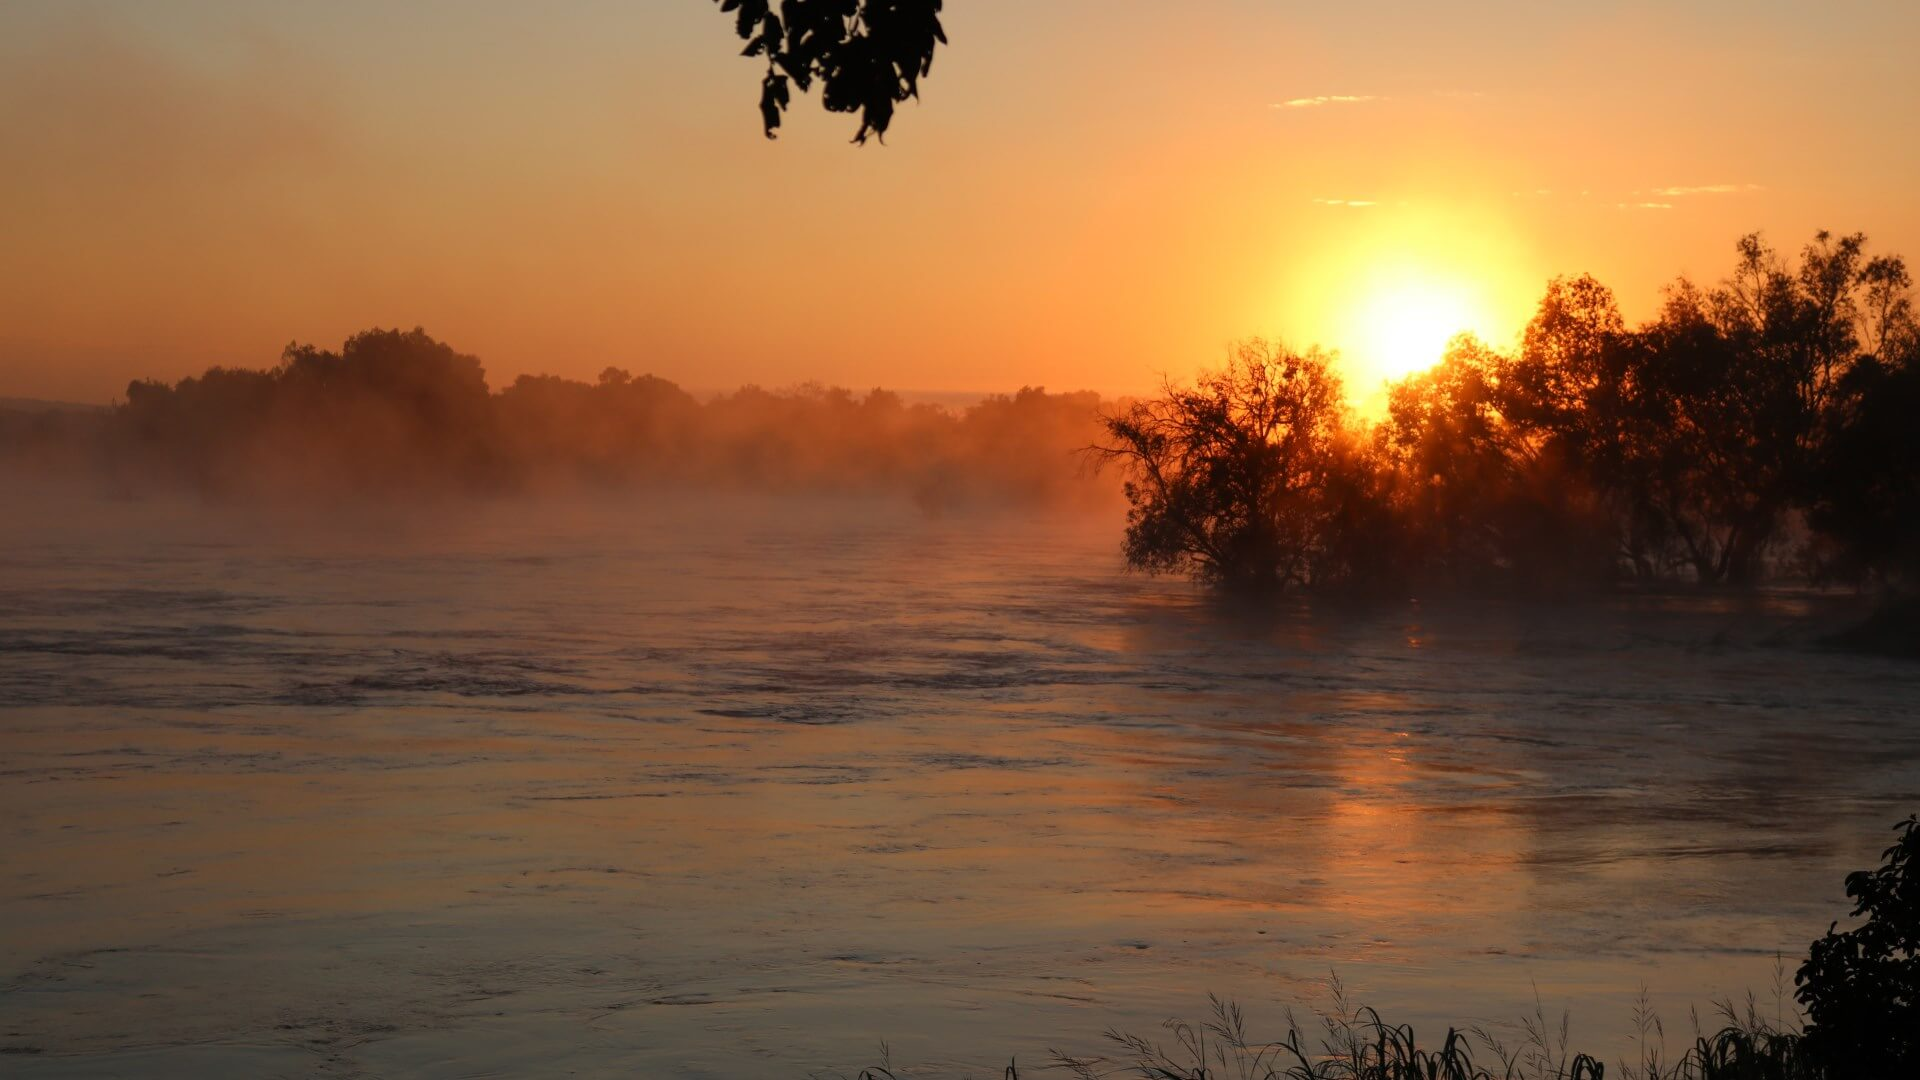 Sunrise at the Zambezi River, Zimbabwe